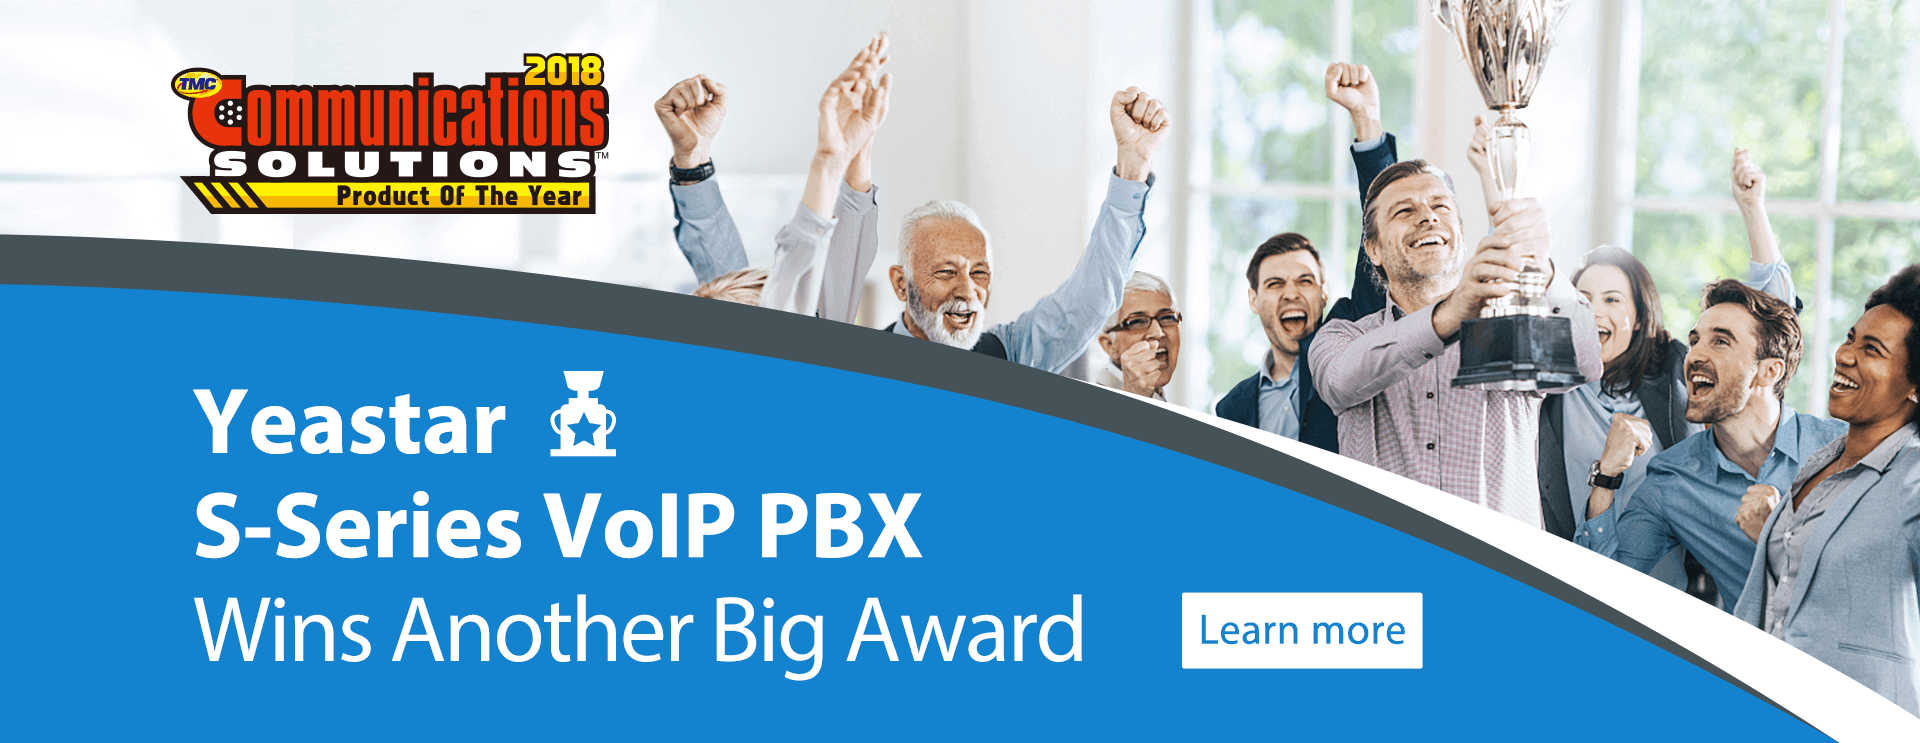 Yeastar S-Series VoIP PBX Wins Another Big Award